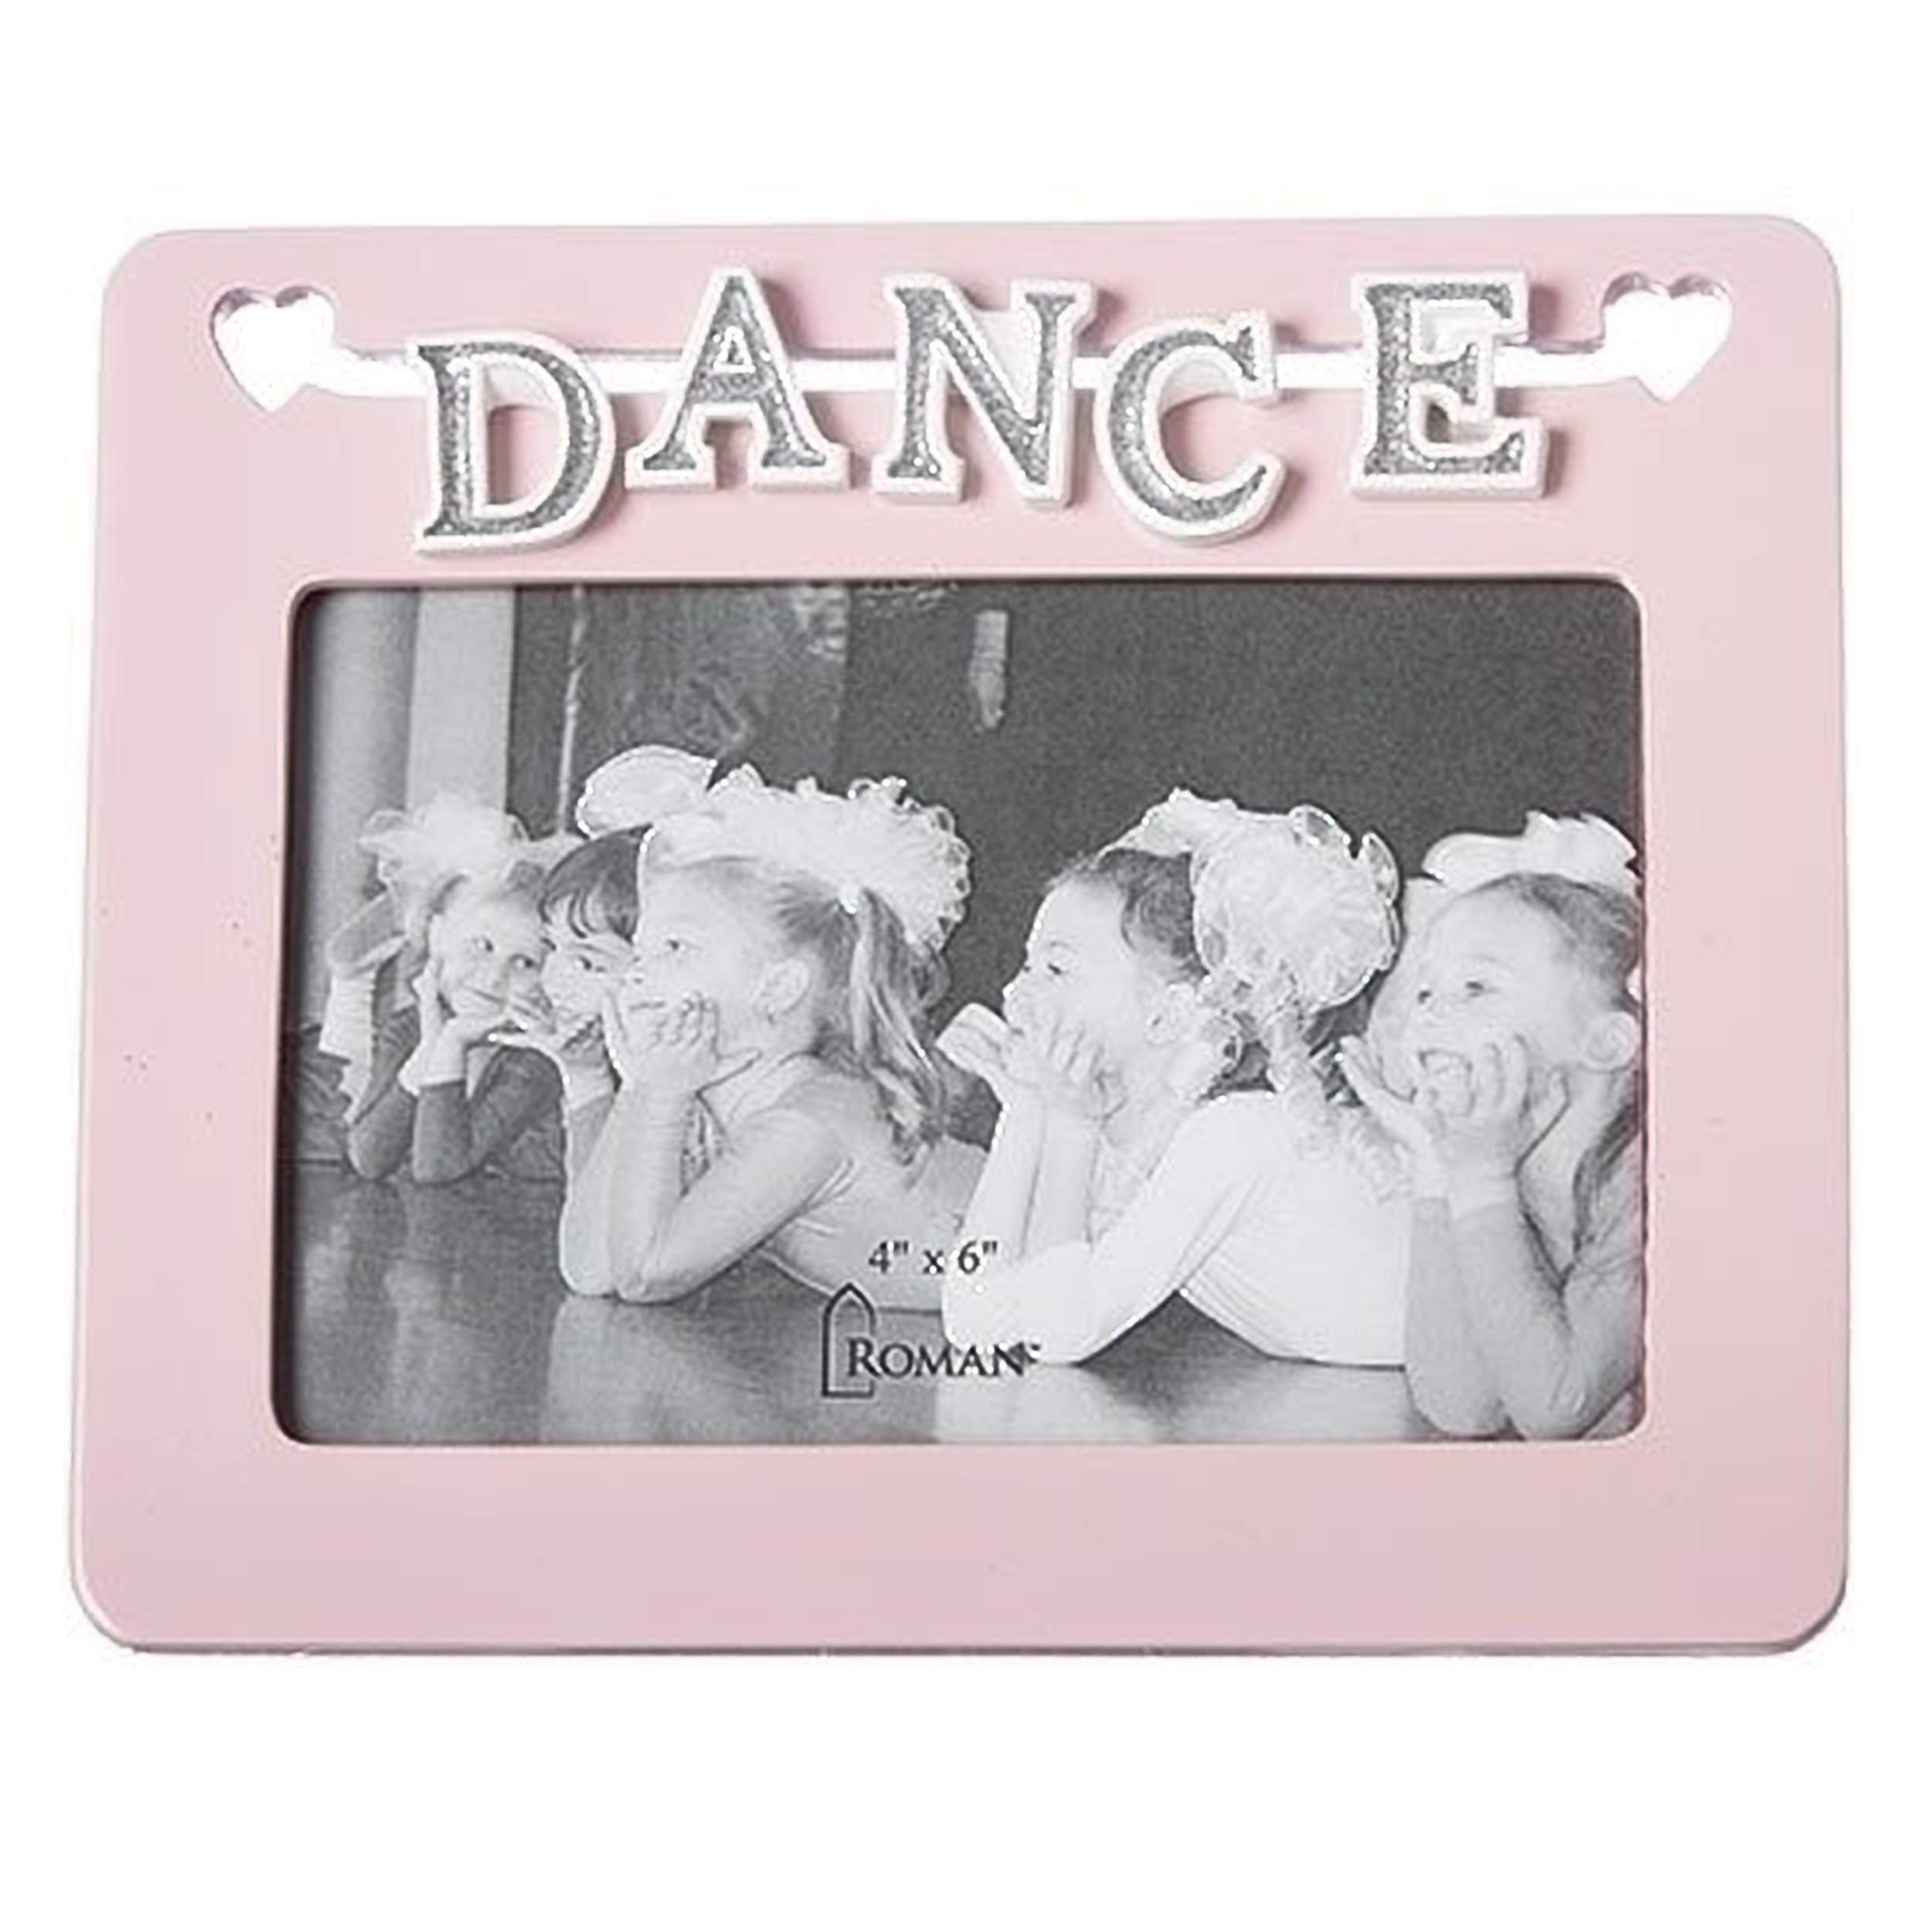 Dance Letters with Cutout Hearts Soft Pale Pink 7.5 x 6 Resin Stone Photo Frame